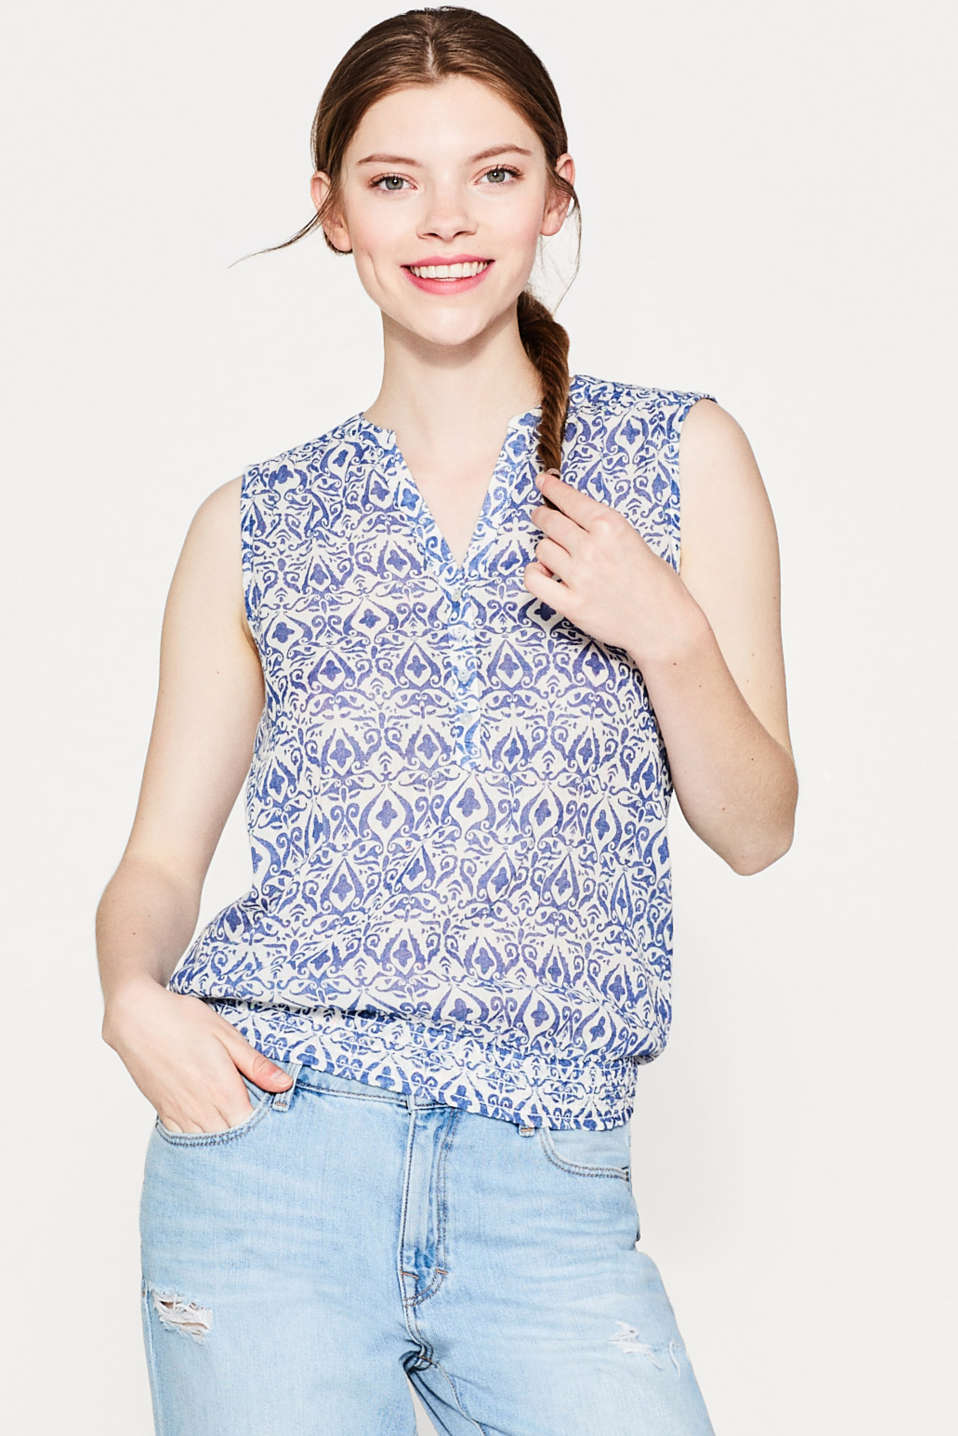 Esprit - Luftiges Blusen-Top mit Ornament-Print